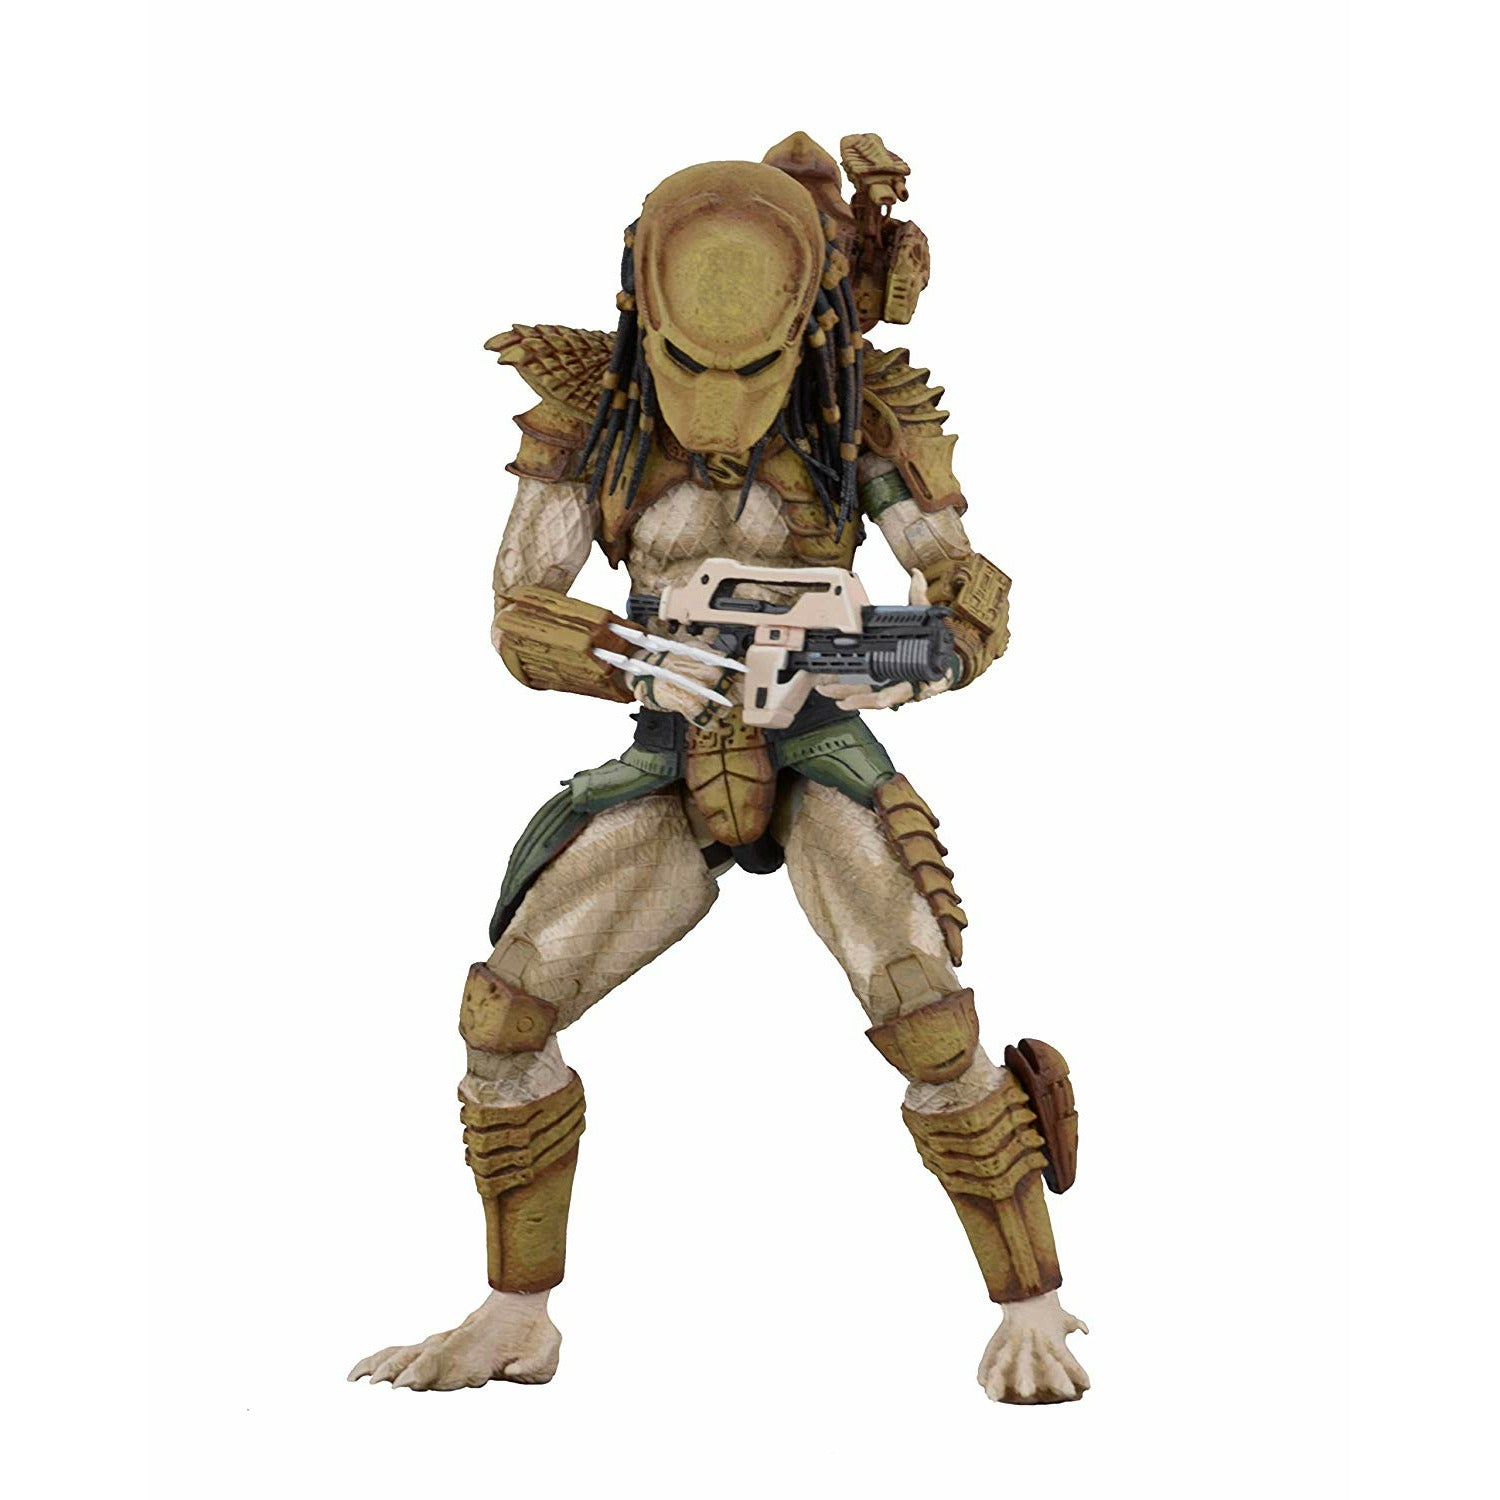 Alien vs. Predator Hunter Predator 7 inch Scale Action Figure